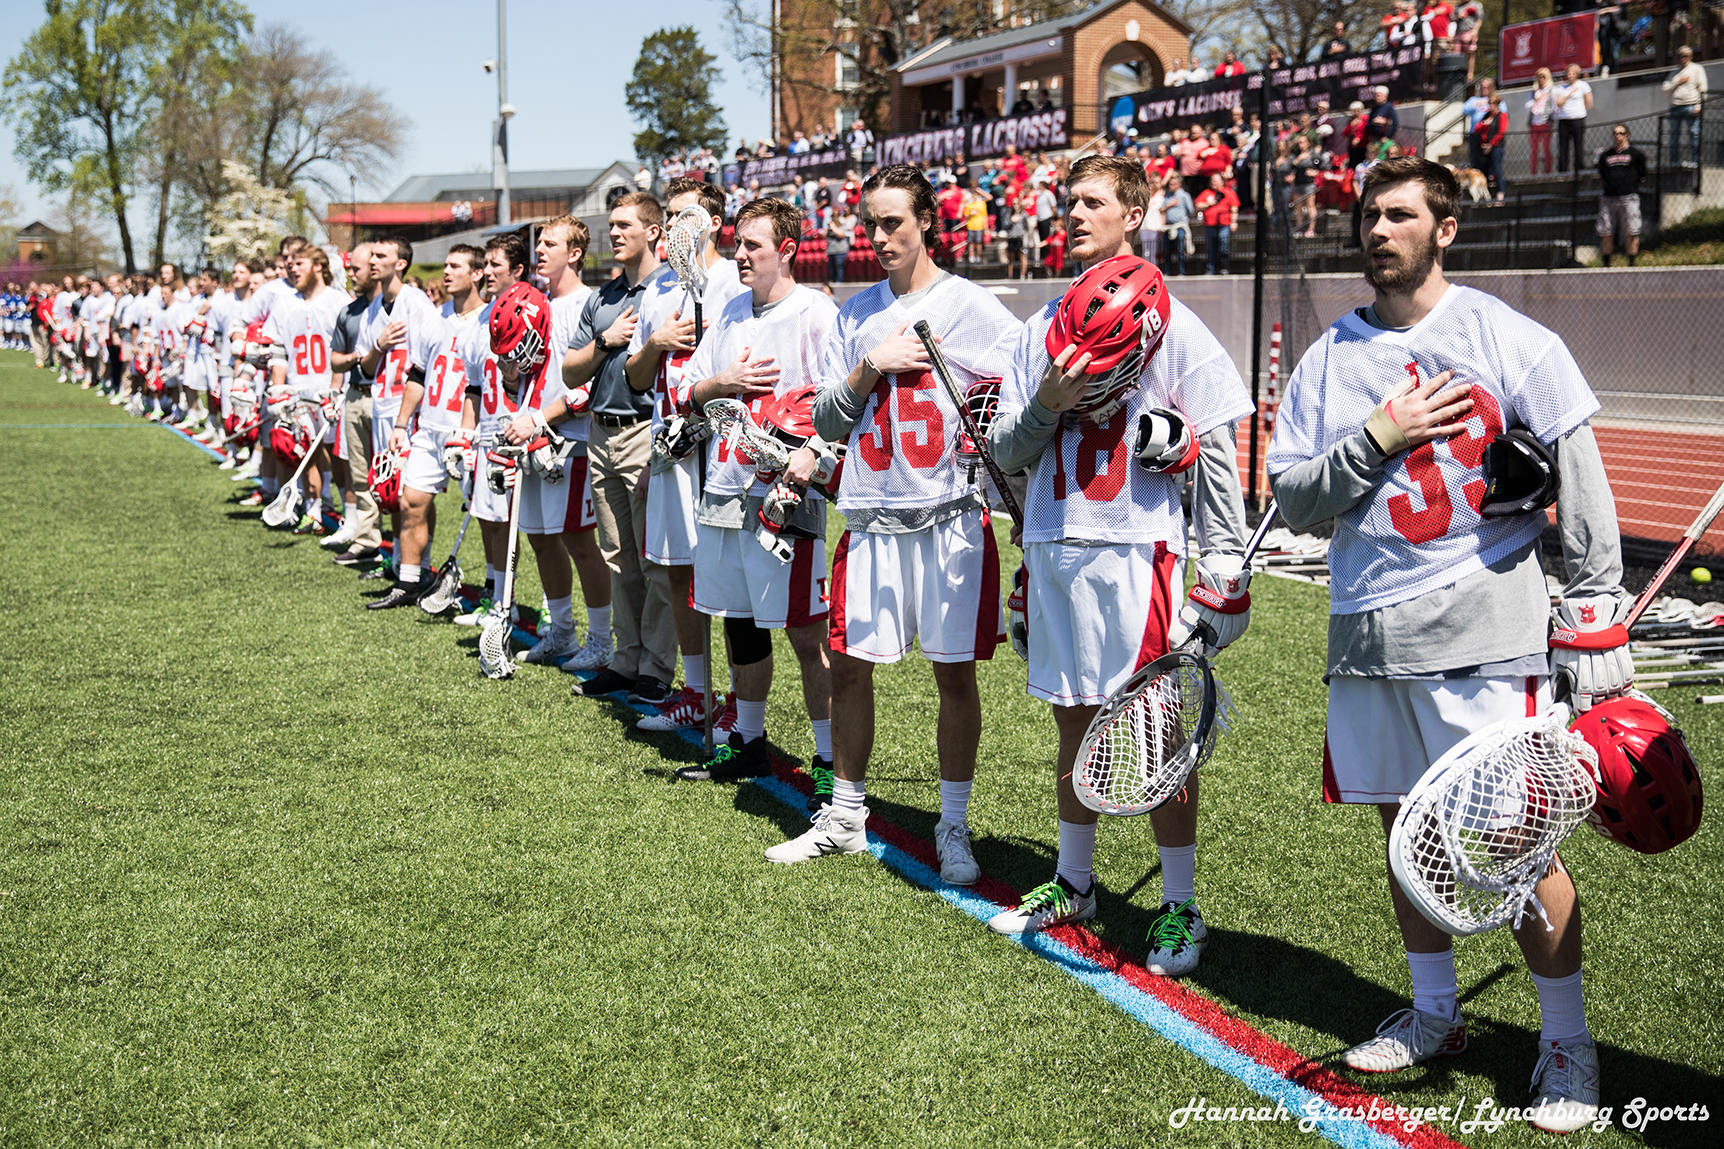 The men's lacrosse team salutes the flag during the Star Spangled Banner.